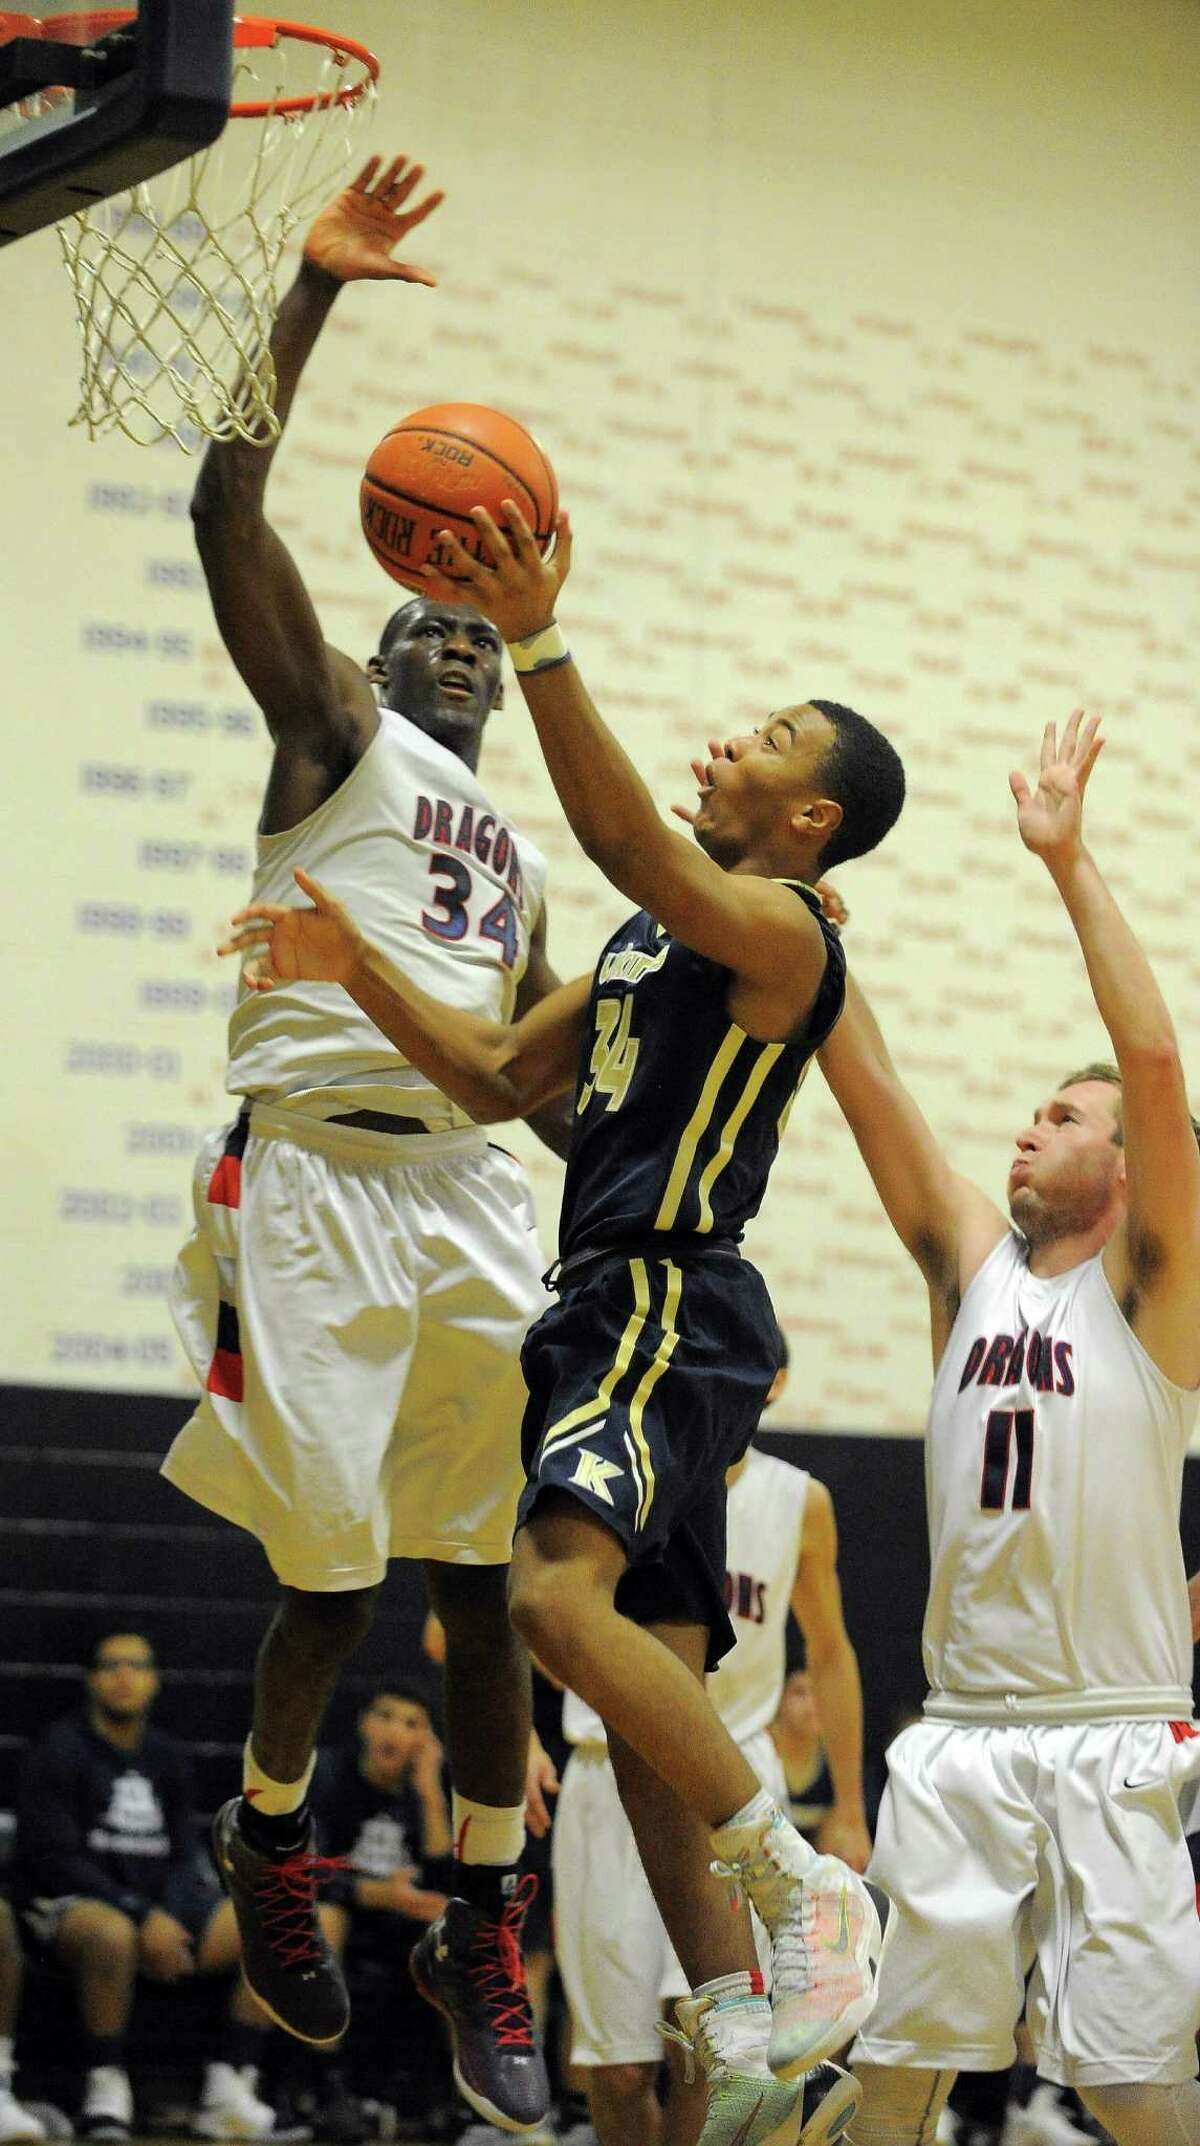 GFA's Sunday Okeke defends with Mack Mueller the shot of King A.J. Greene in a FAA varsity boys basketball game at King School in Stamford on Jan. 12, 2017. GFA defeated King 62-55 in overtime.